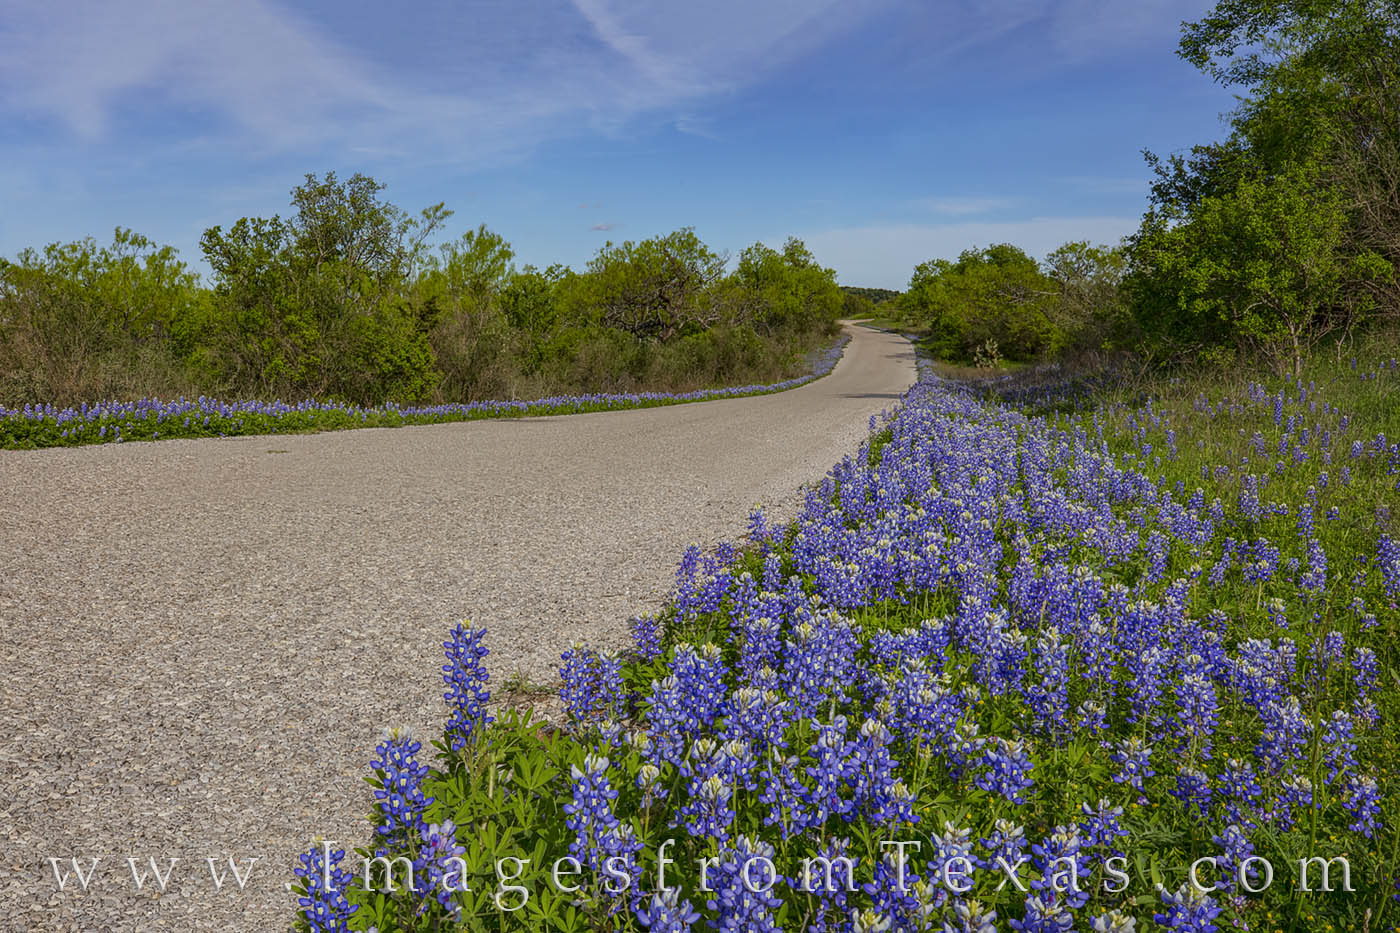 bluebonnets, hill country, drives, county roads, rural roads, farm roads, afternoon, photo